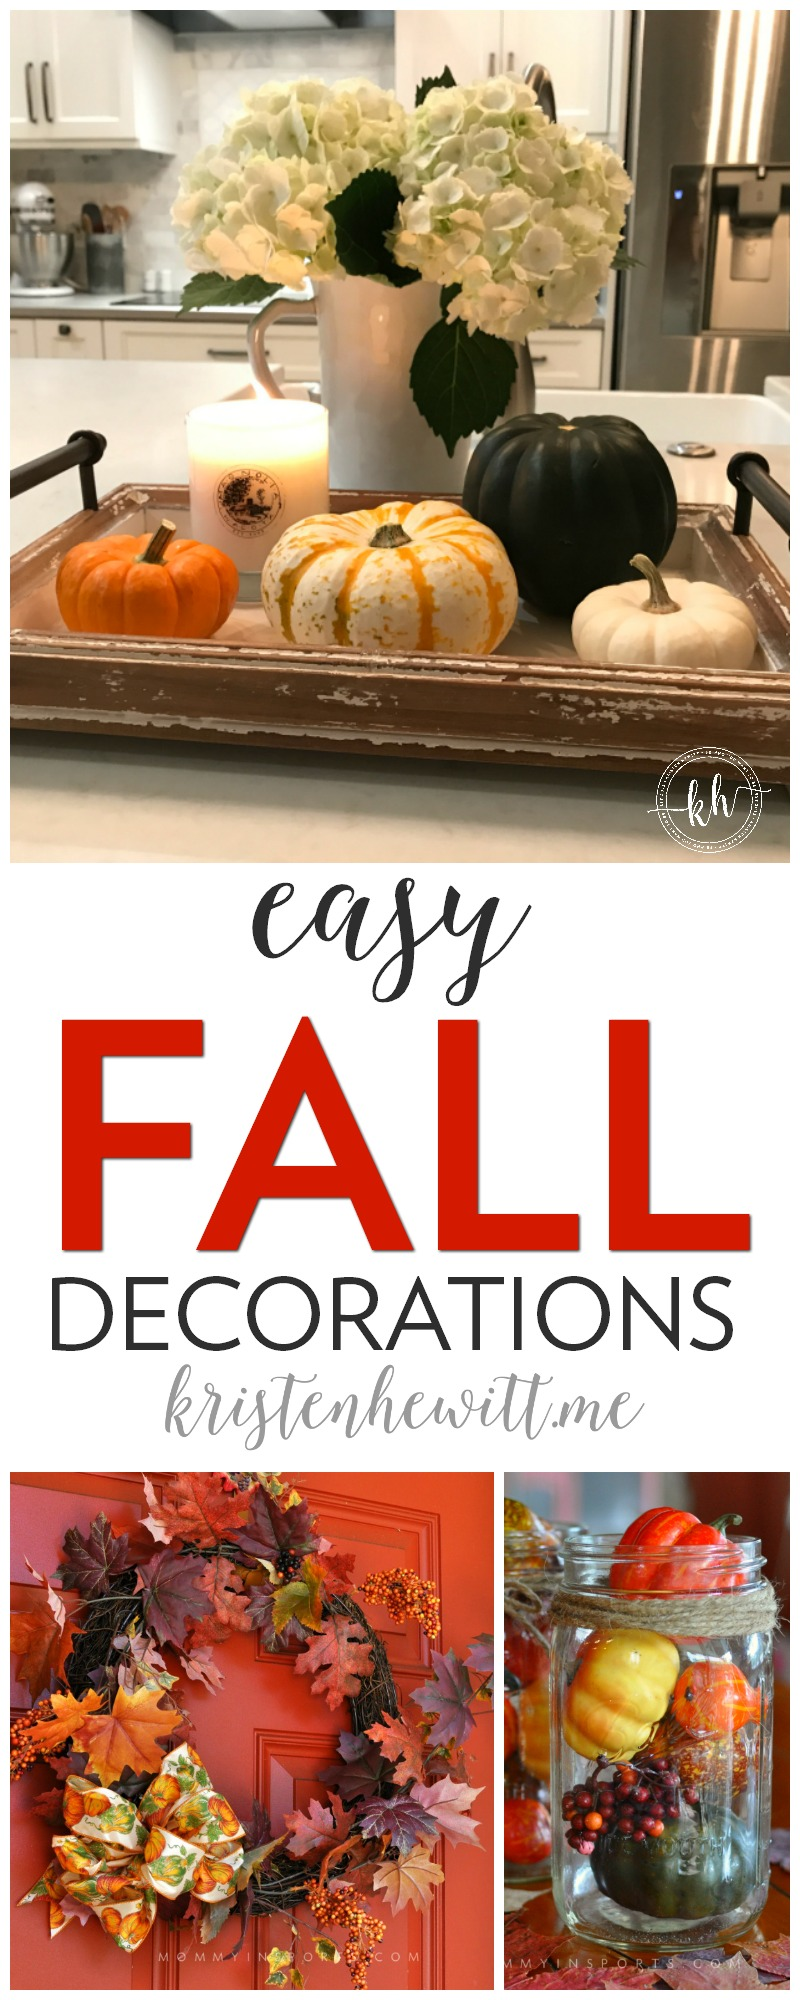 Are You Looking For Some Simple Ways To Add Fall Decor Your Home Check